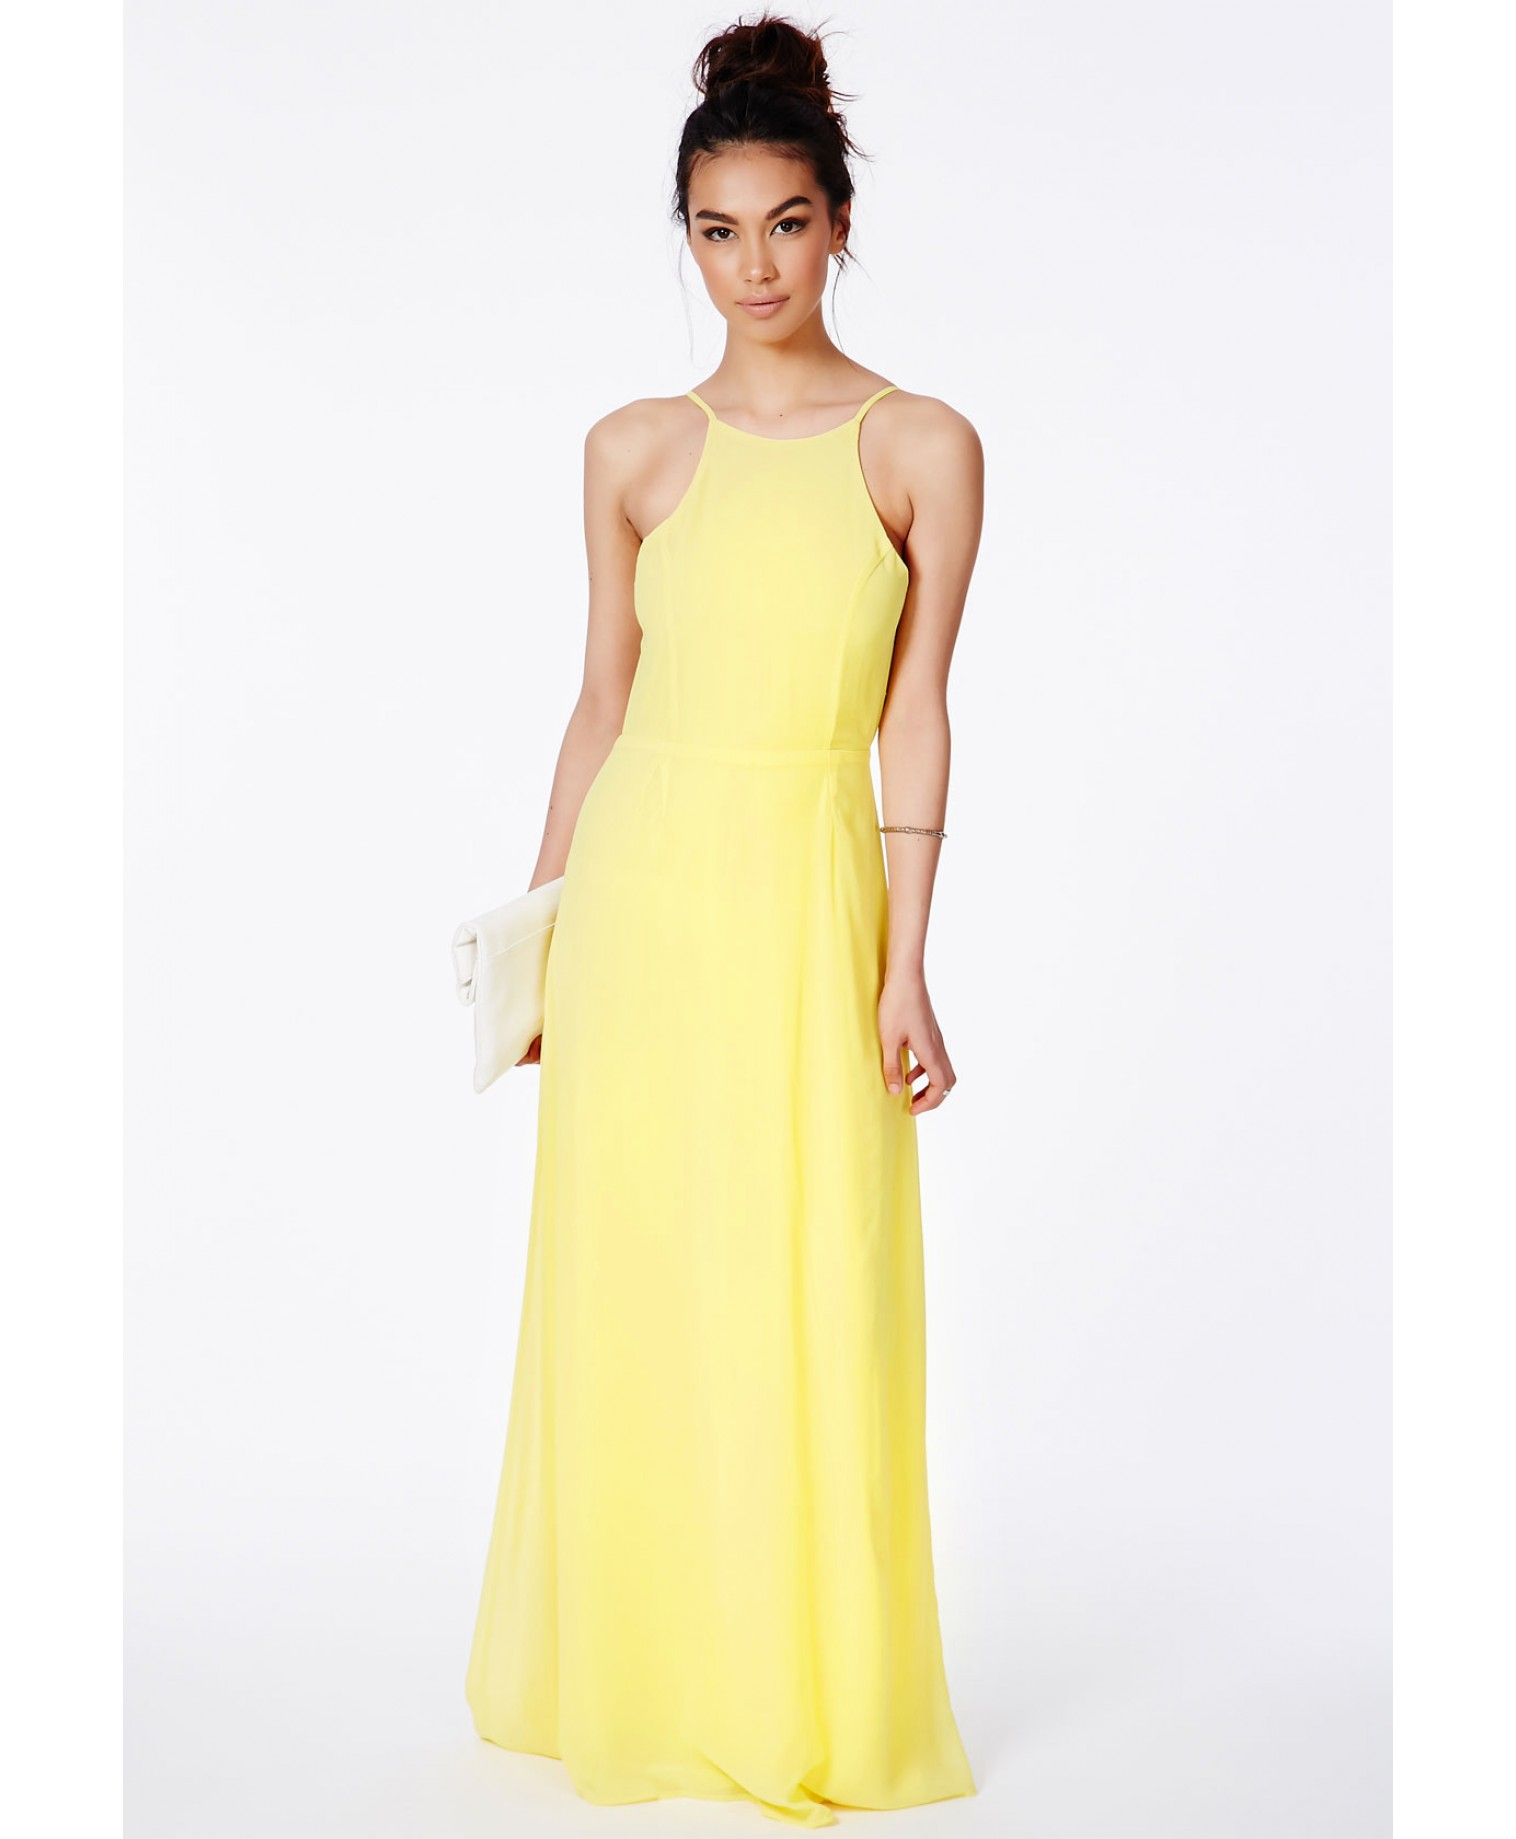 High Yellow Dresses